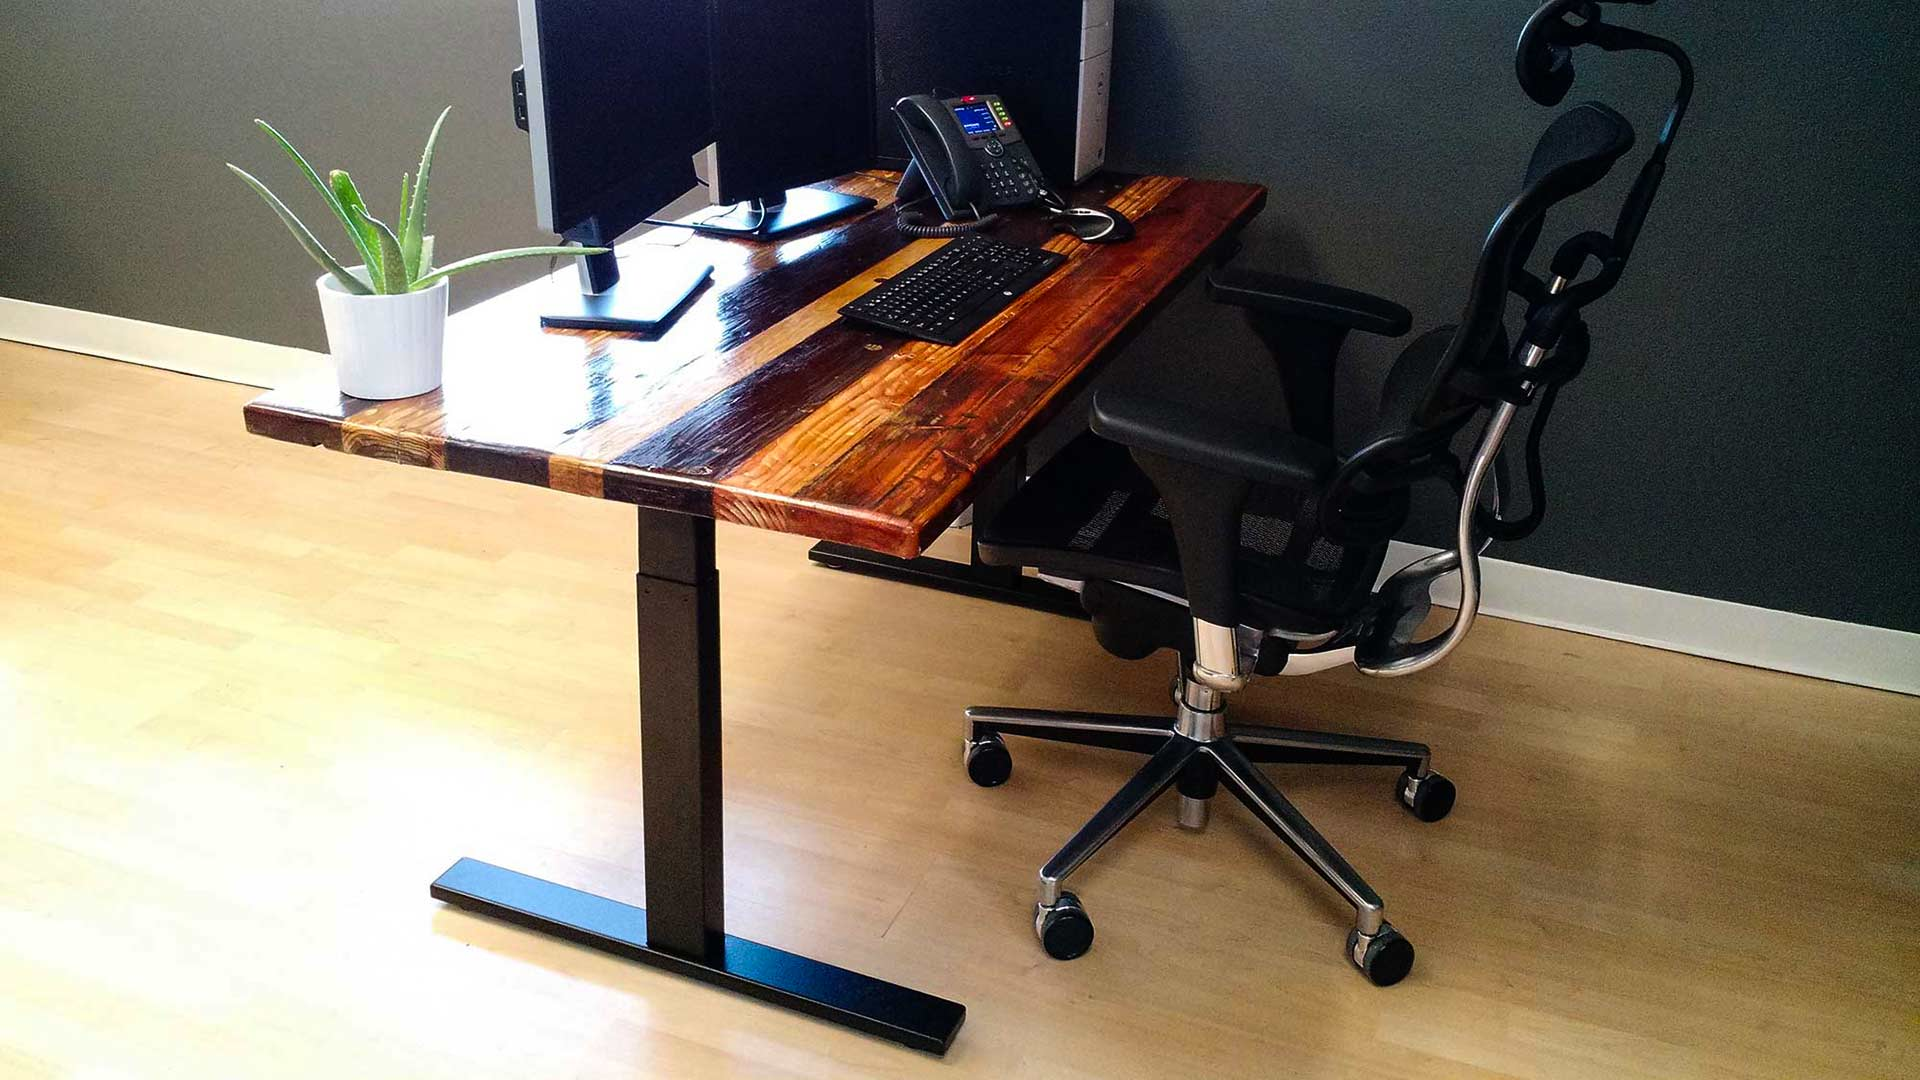 7 Ways to Choose the Best Frames to Build a DIY Standing Desk [for 2019] - one is using the smartdesk kit frame